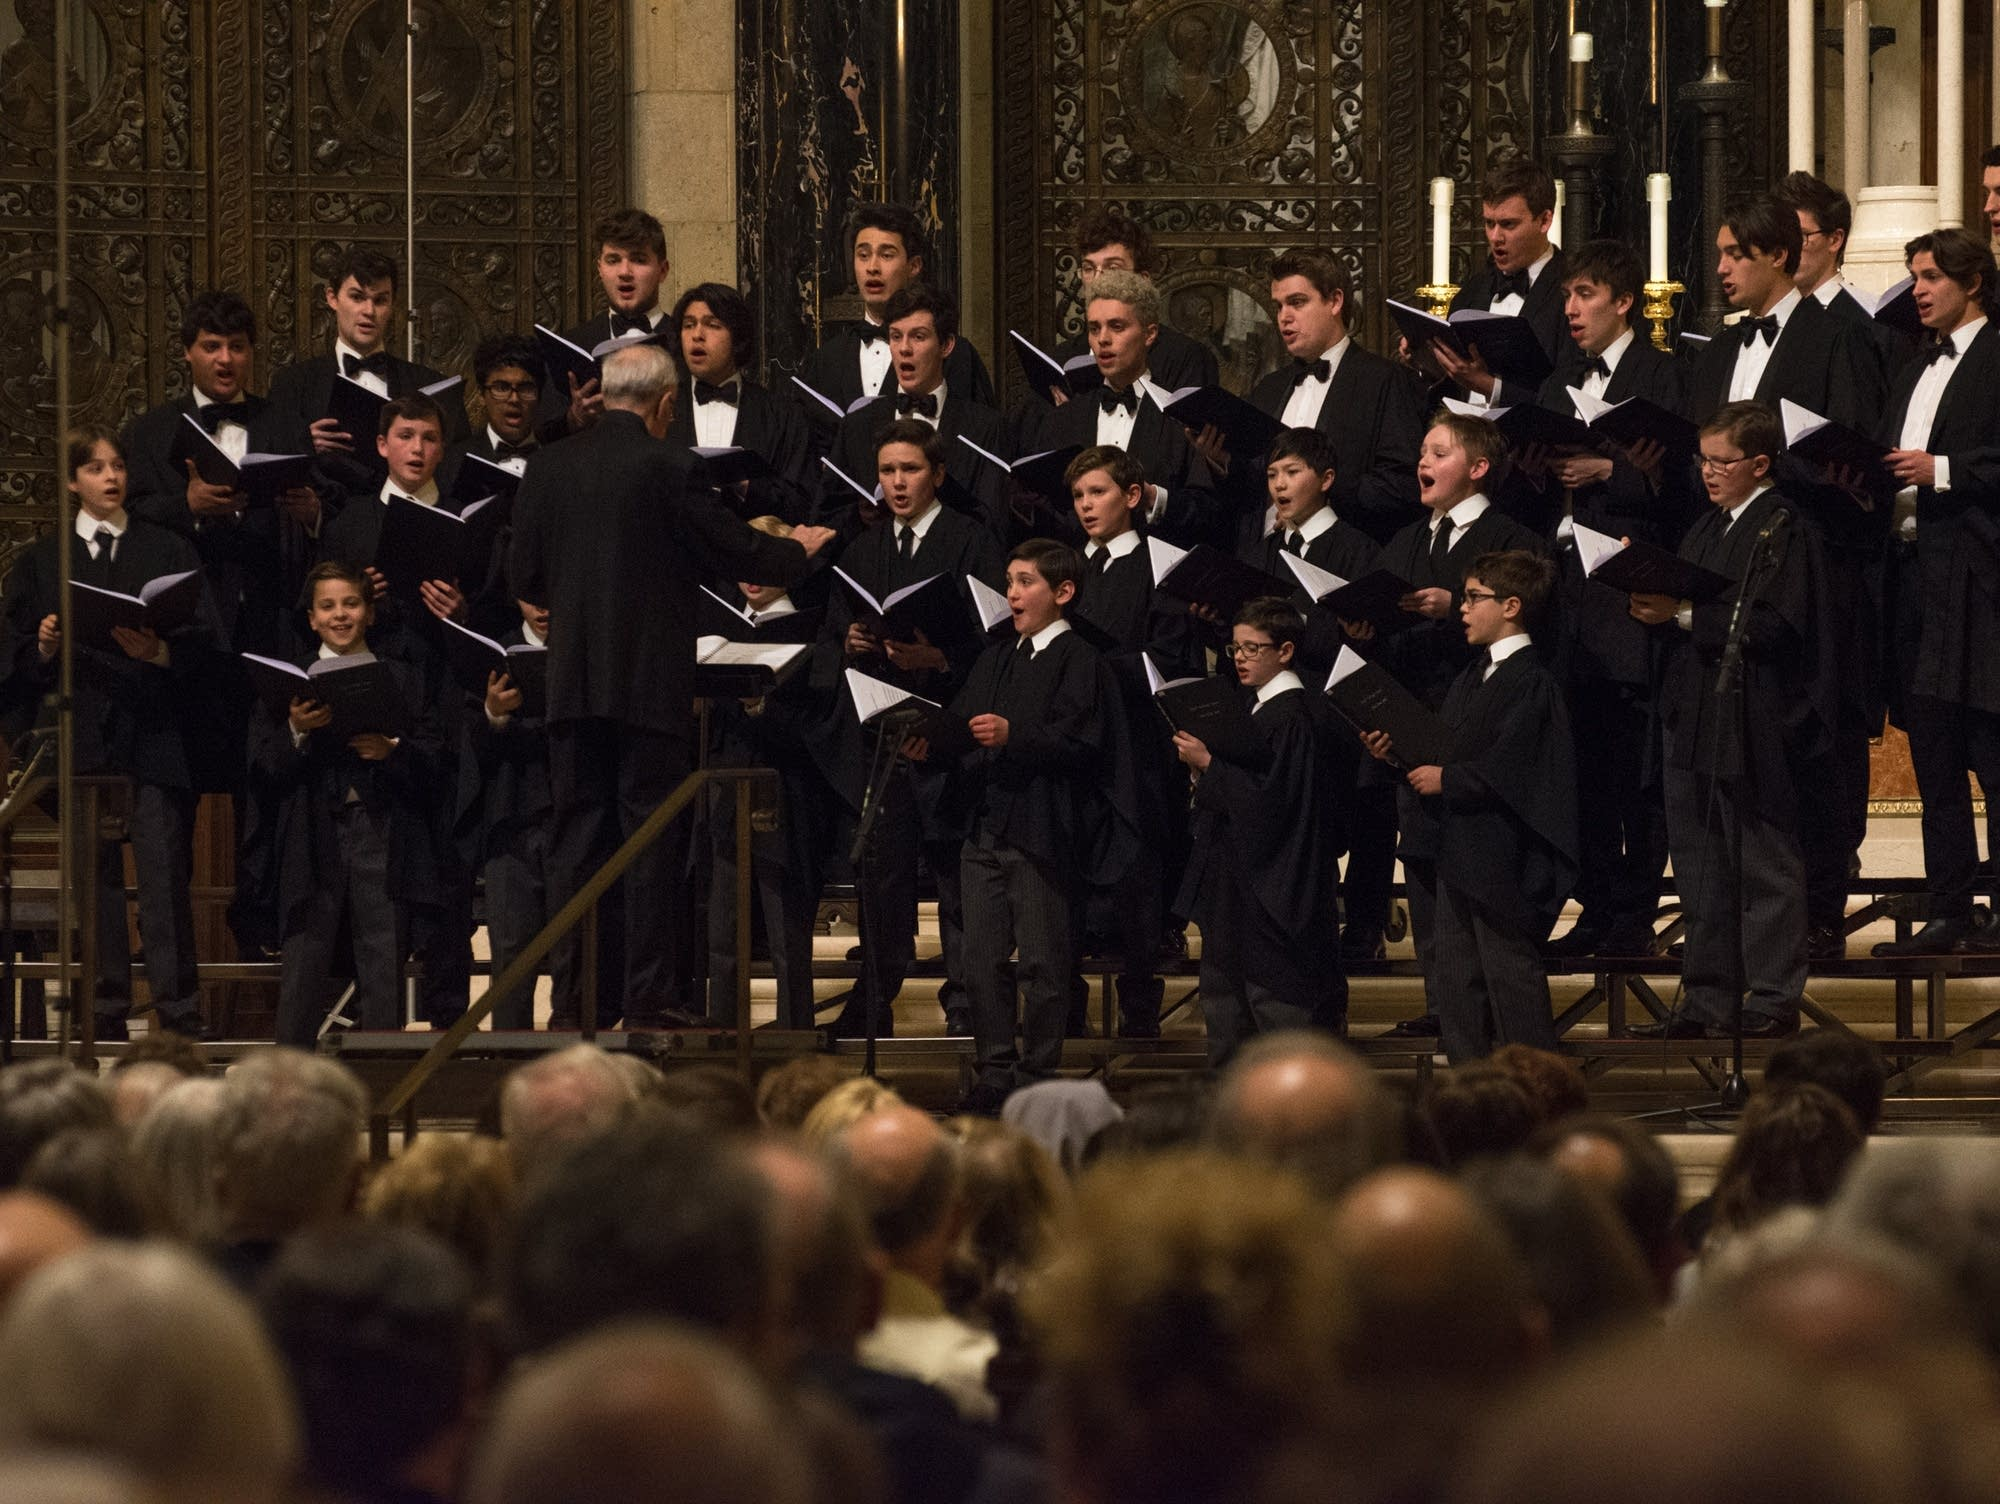 Choir of King's College Concert